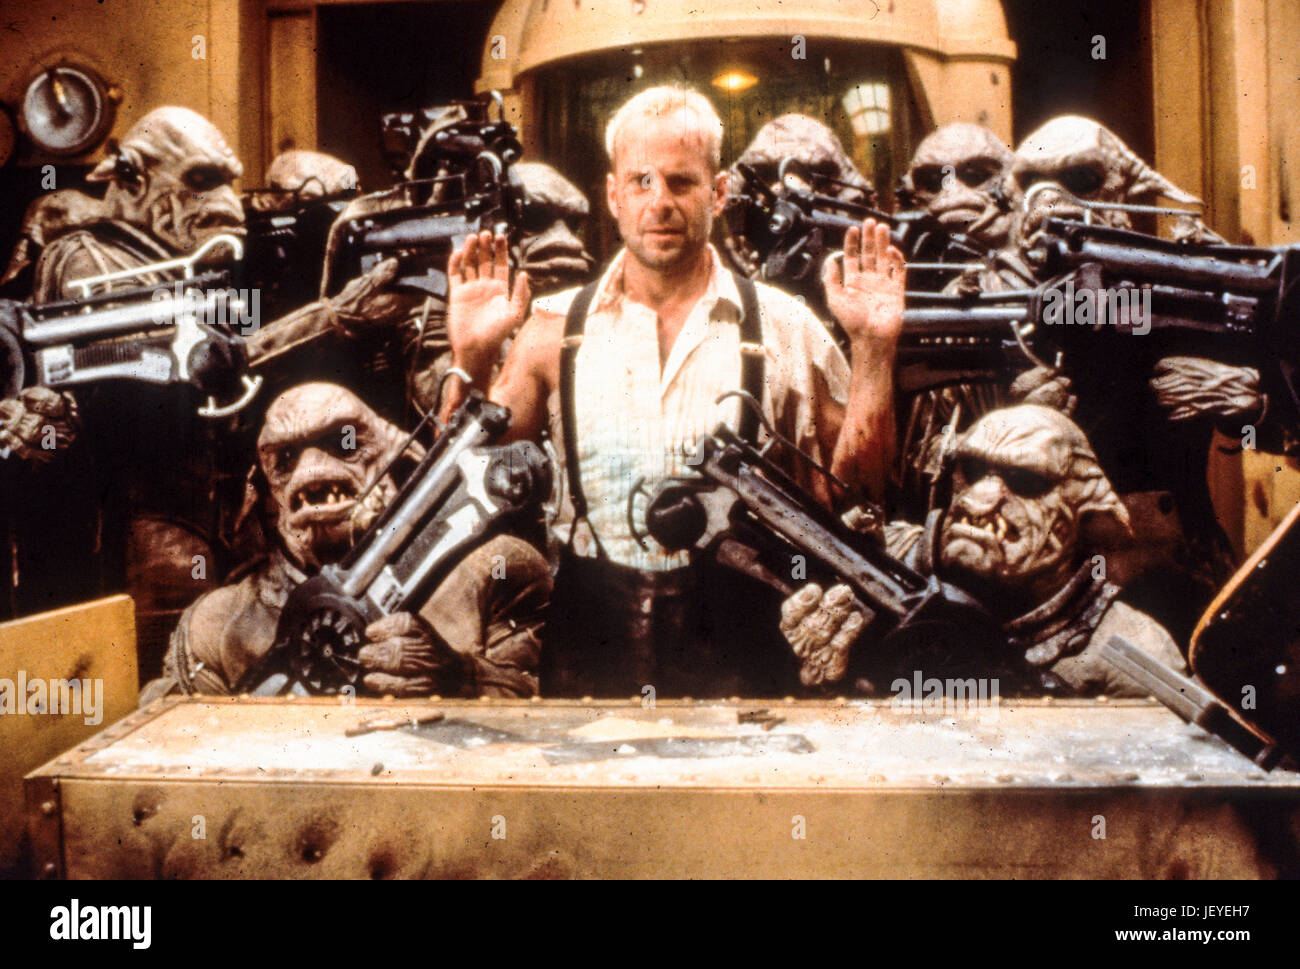 the fifth element, 1997, bruce willis - Stock Image